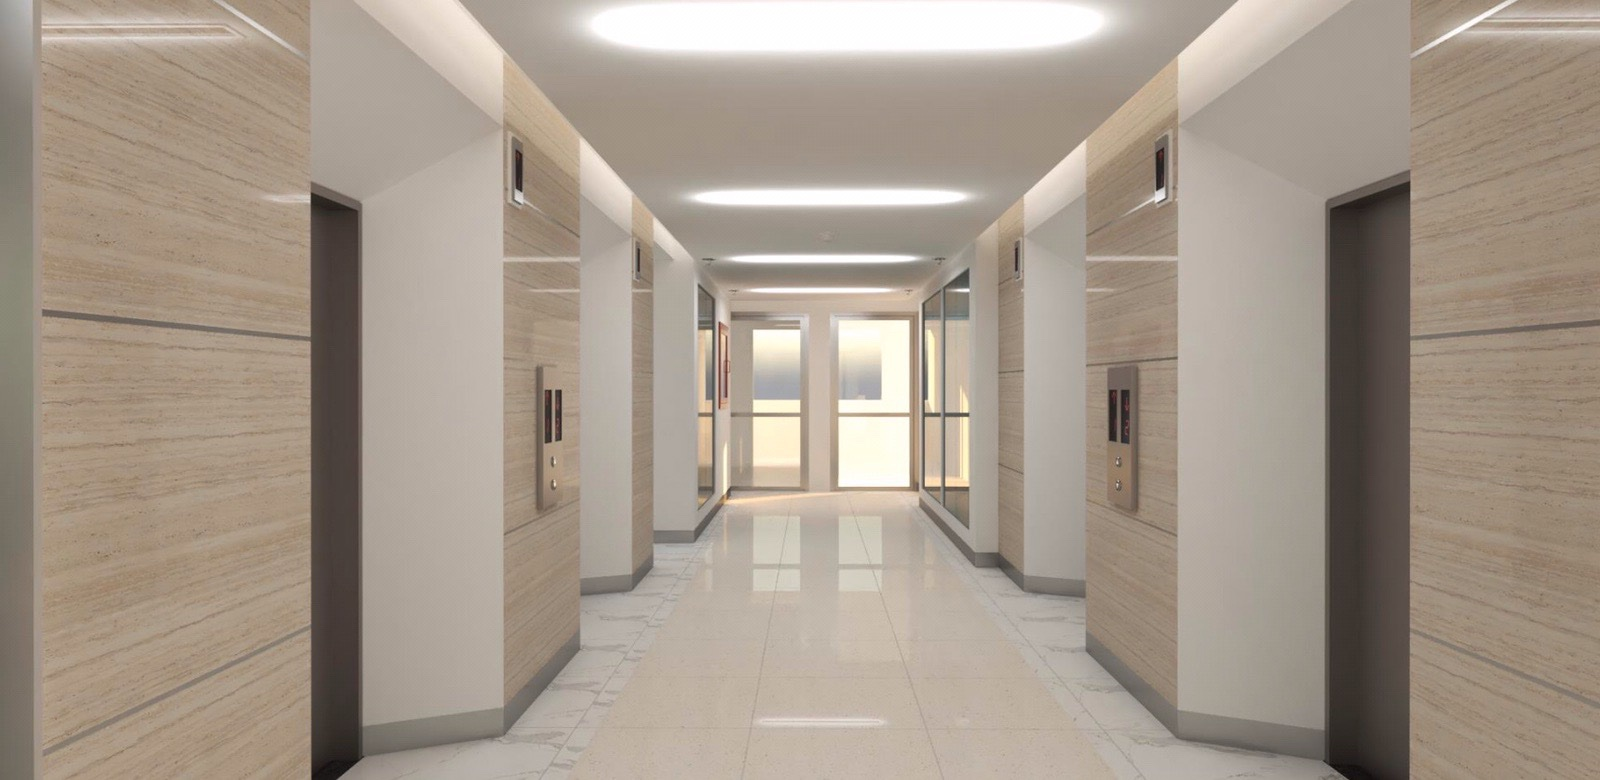 Office Space For Sale at Pet Plans Tower Edsa, Makati City 5